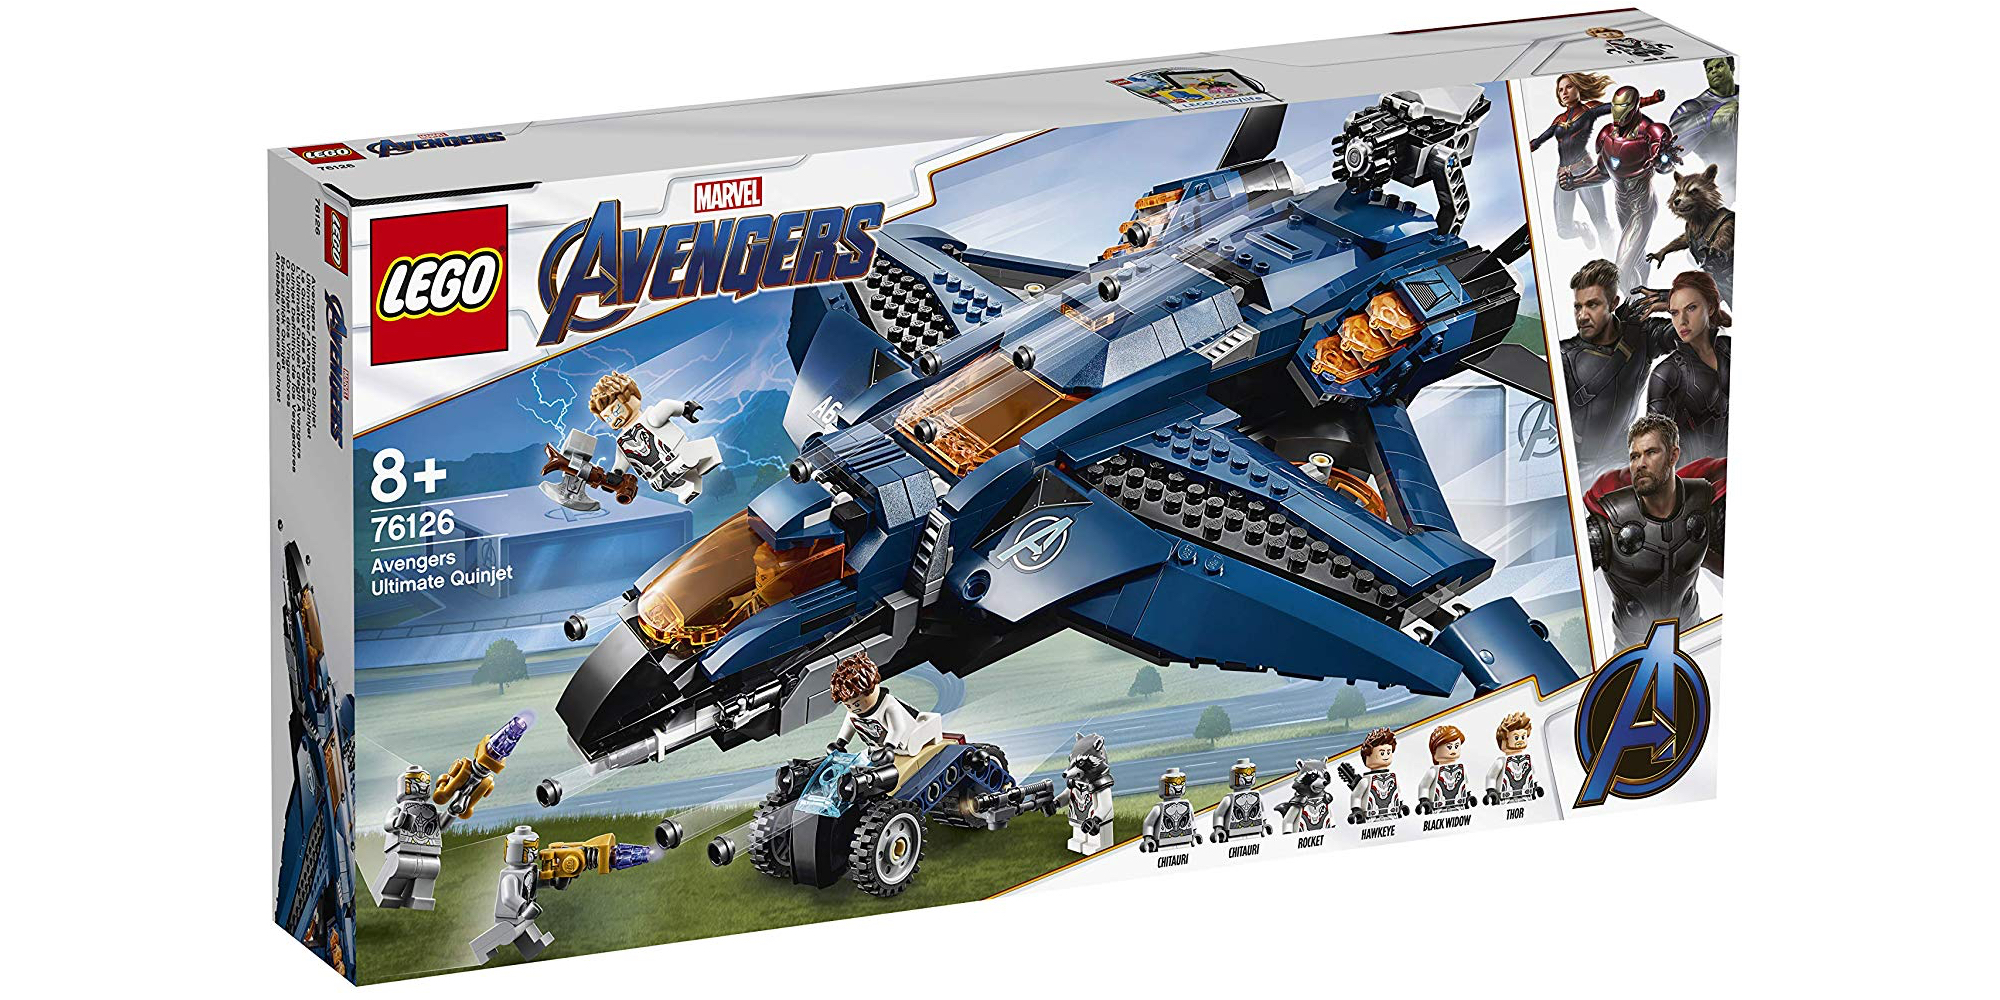 Lego Avengers Endgame Sets Are Here W New Minifigs More